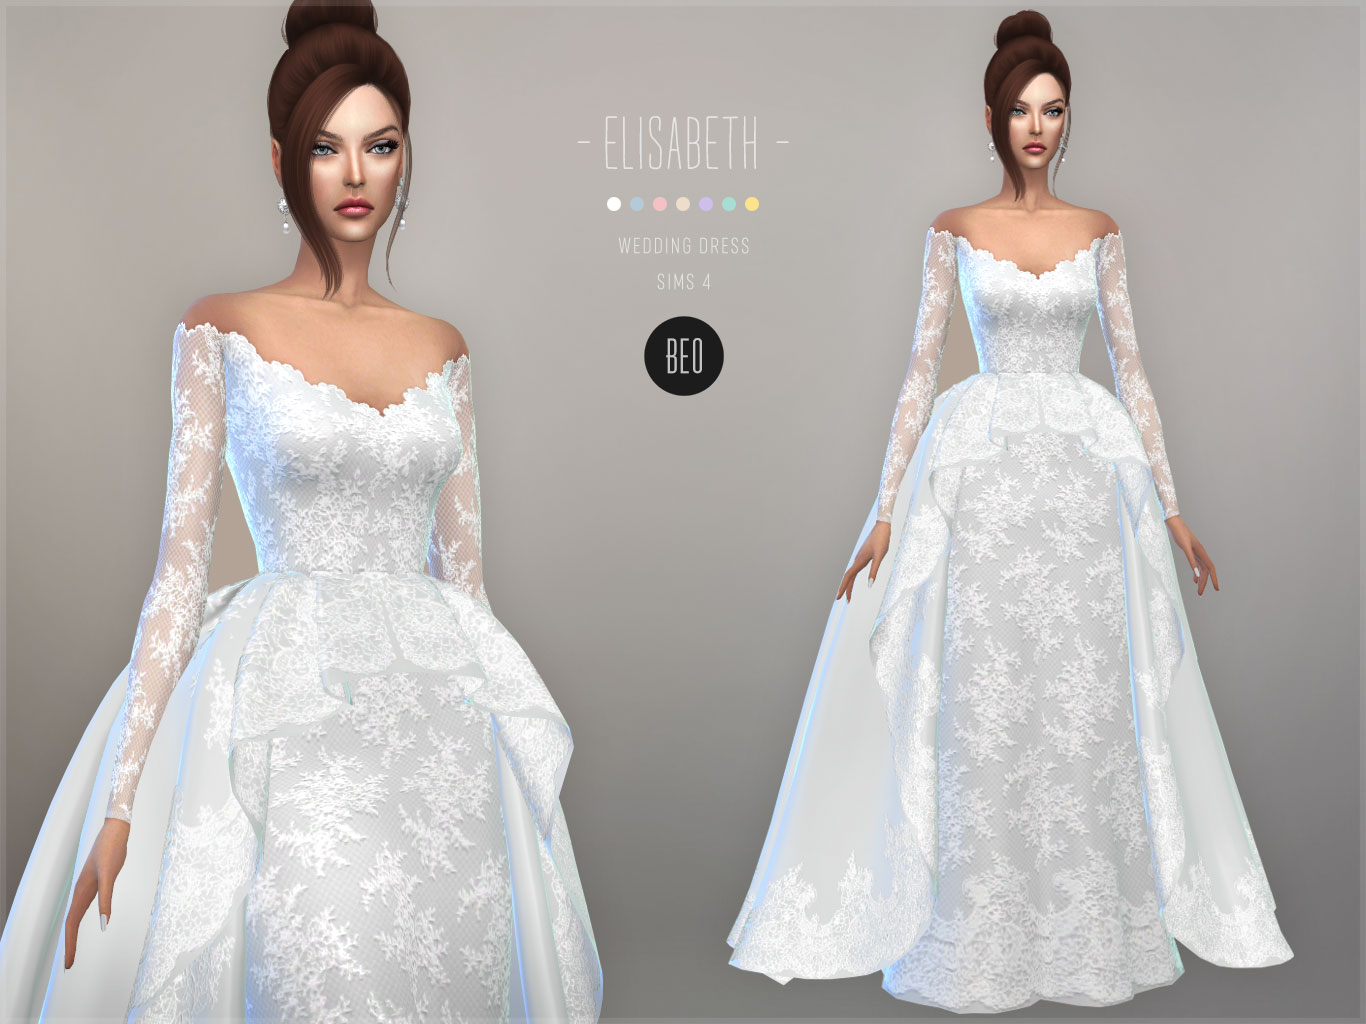 Wedding gown - Elisabeth for The Sims 4 by BEO